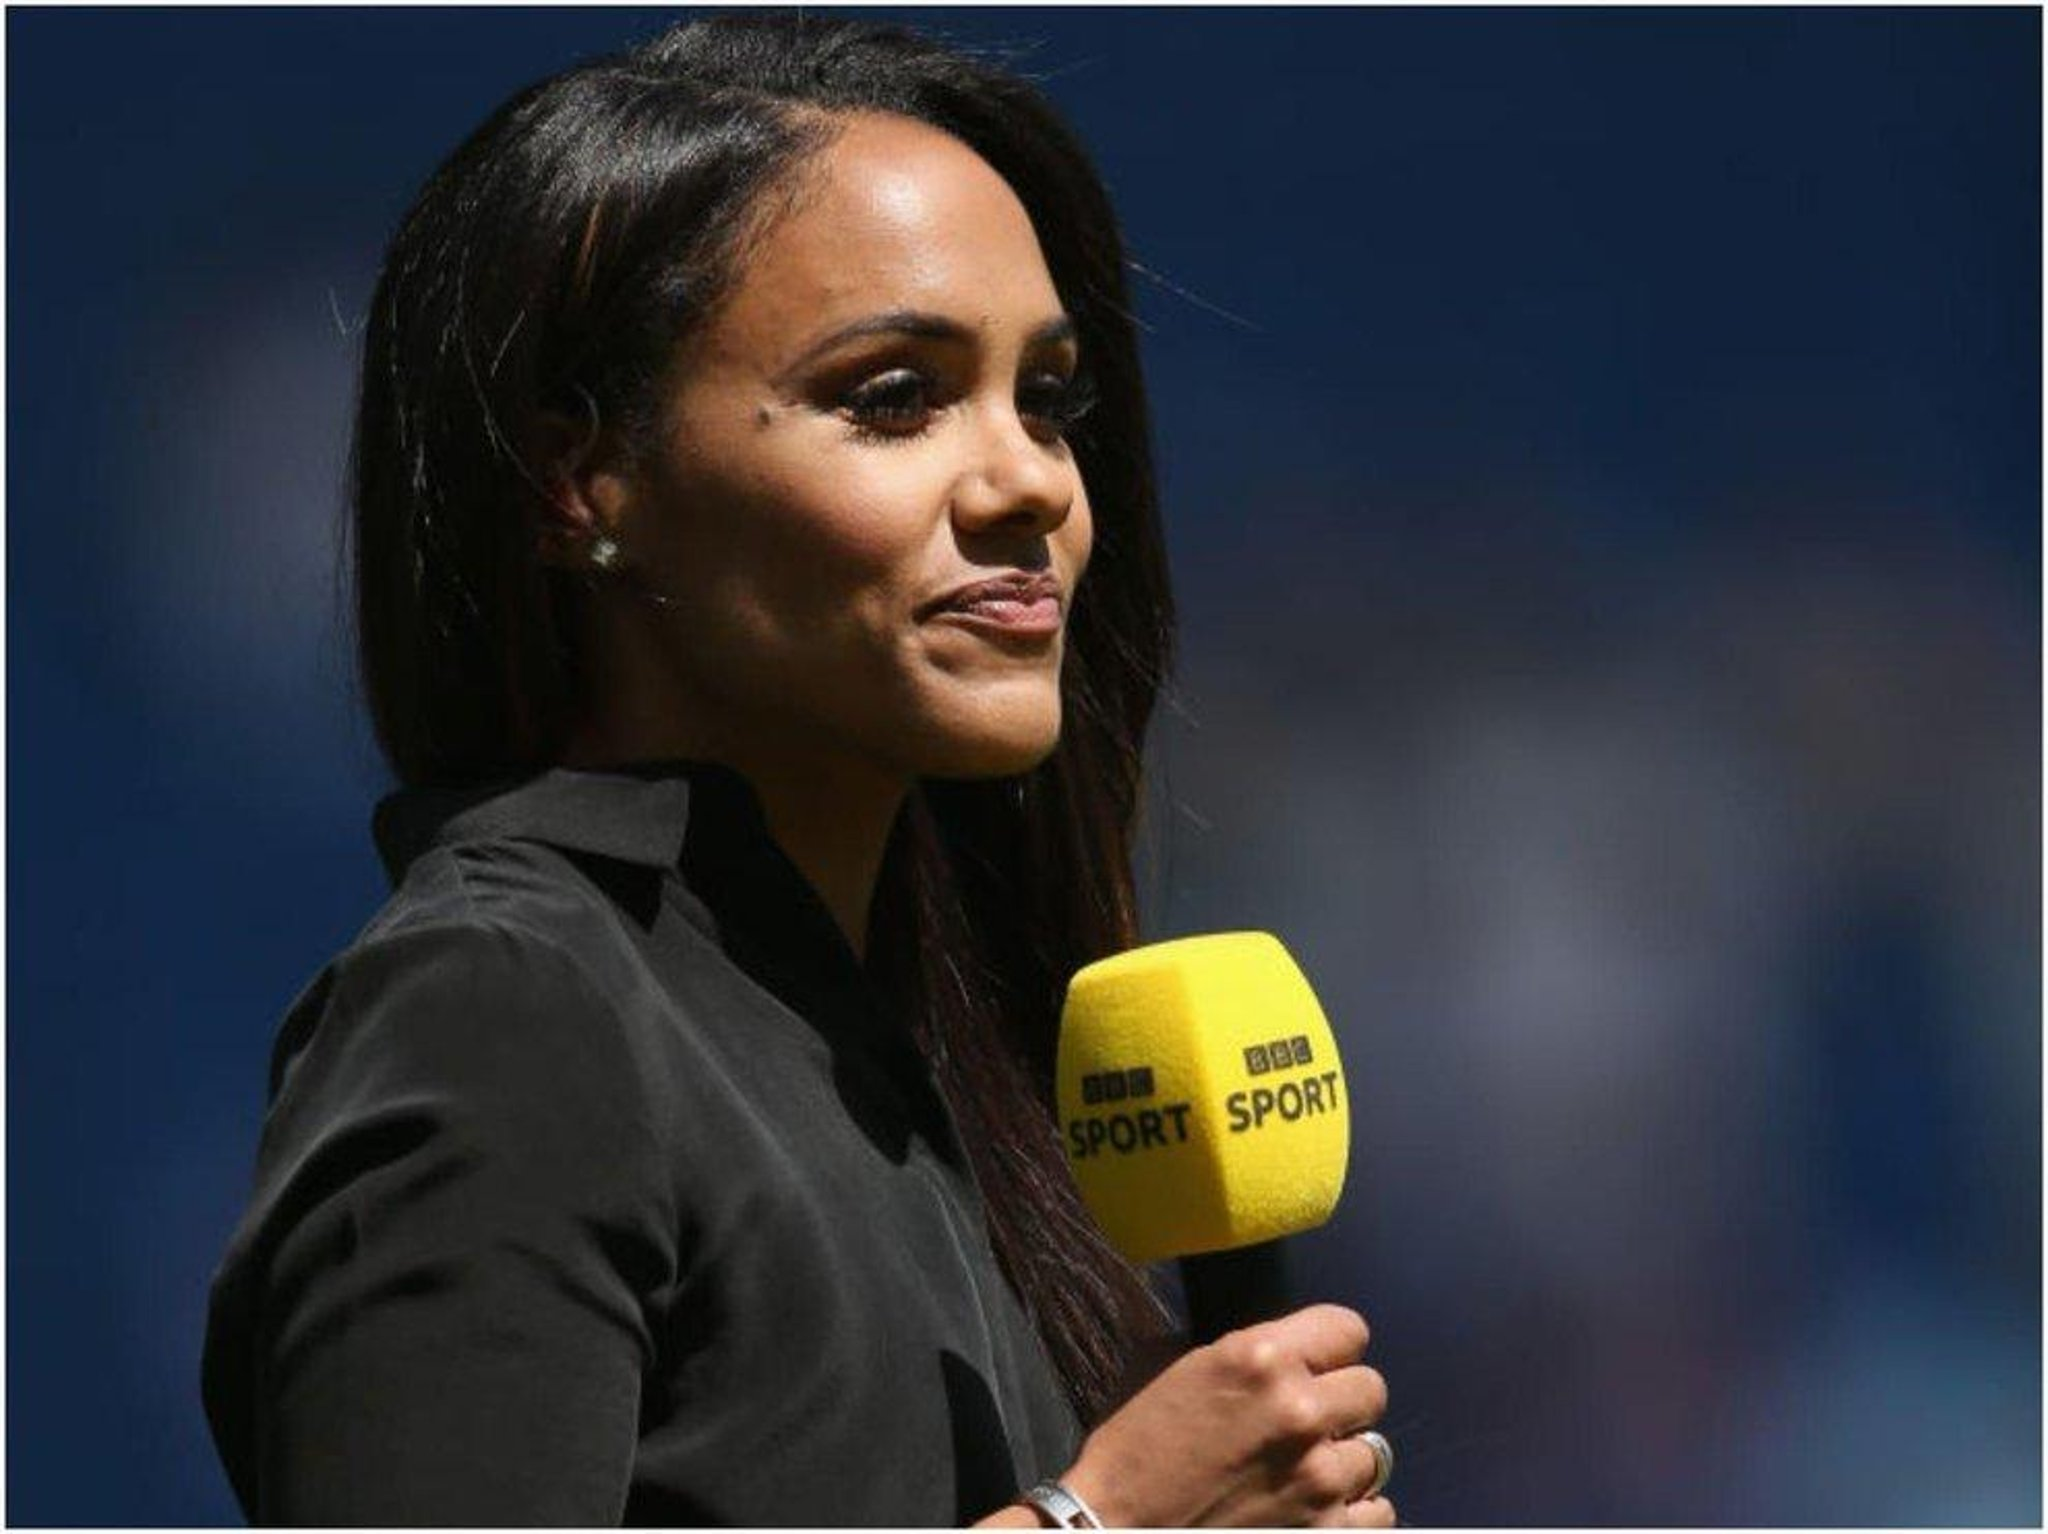 EA Sports activities FIFA online game verify they are going to have feminine commentator for the primary time